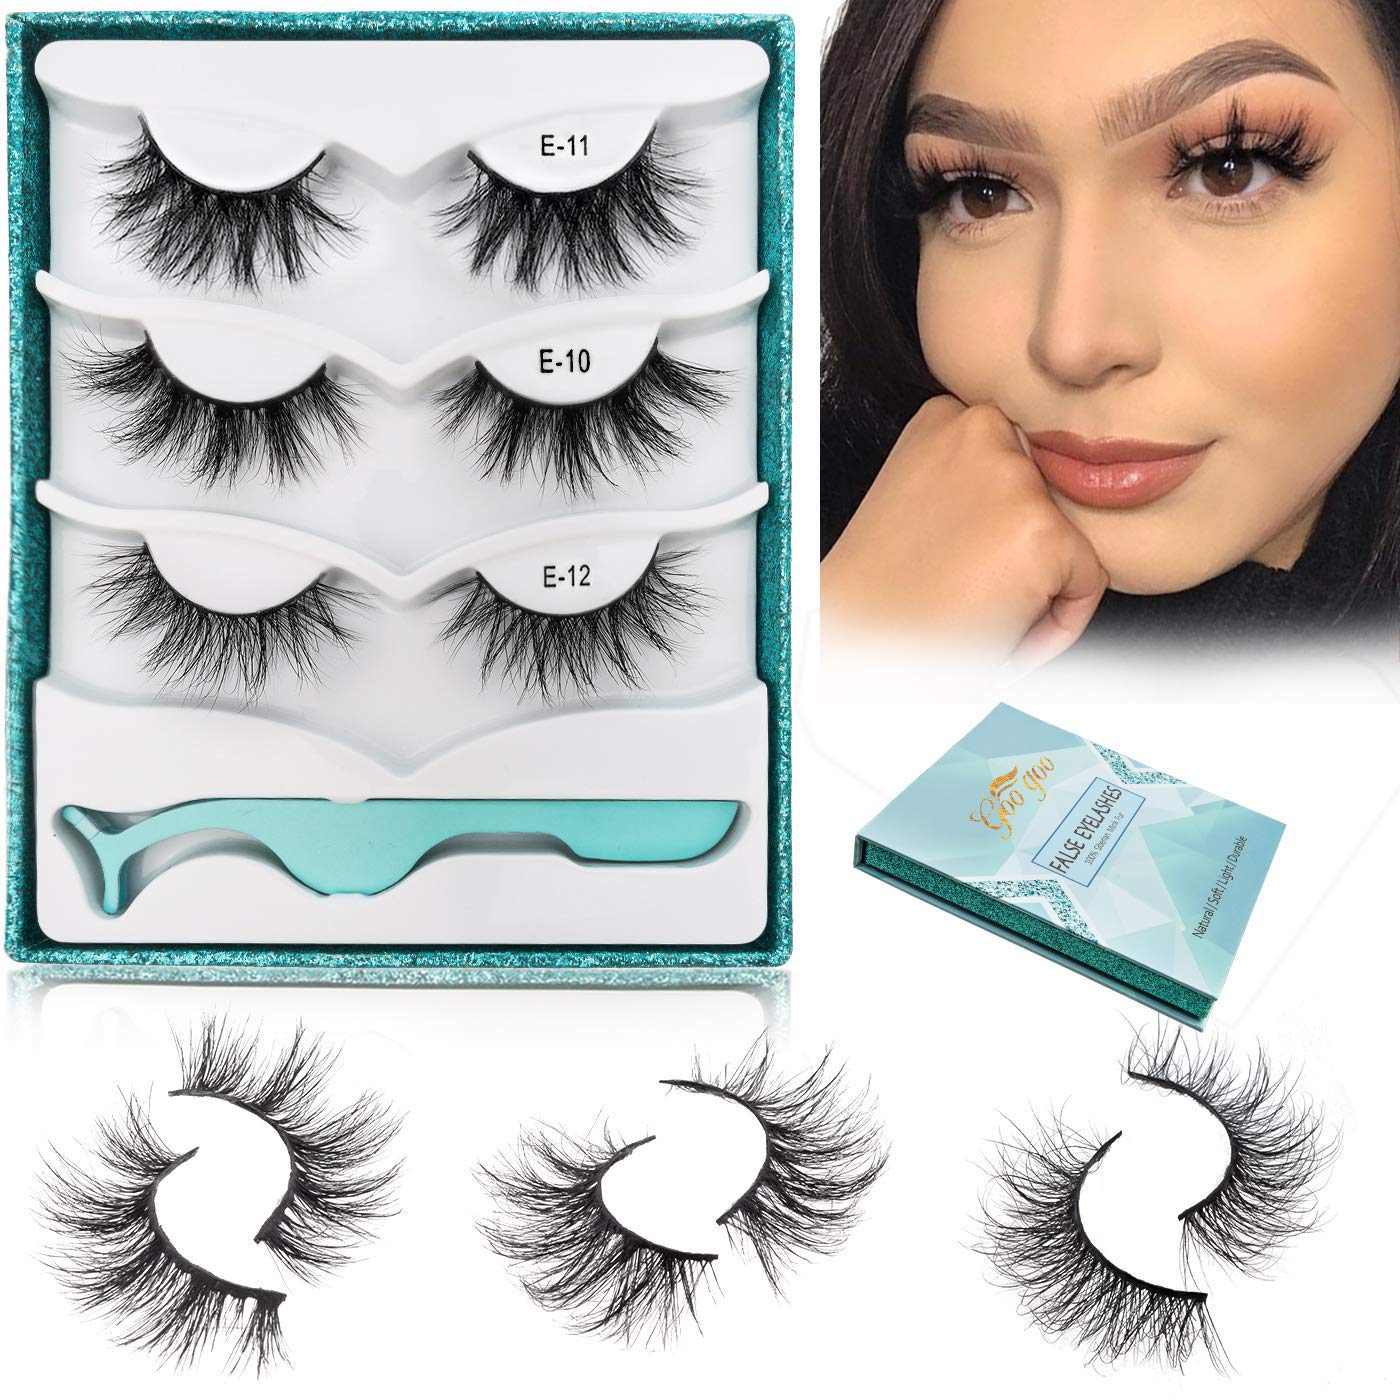 GOO Fake Eyelashes Natural Crossed Mi Cluster Type Discount mail order 3D Daily A surprise price is realized